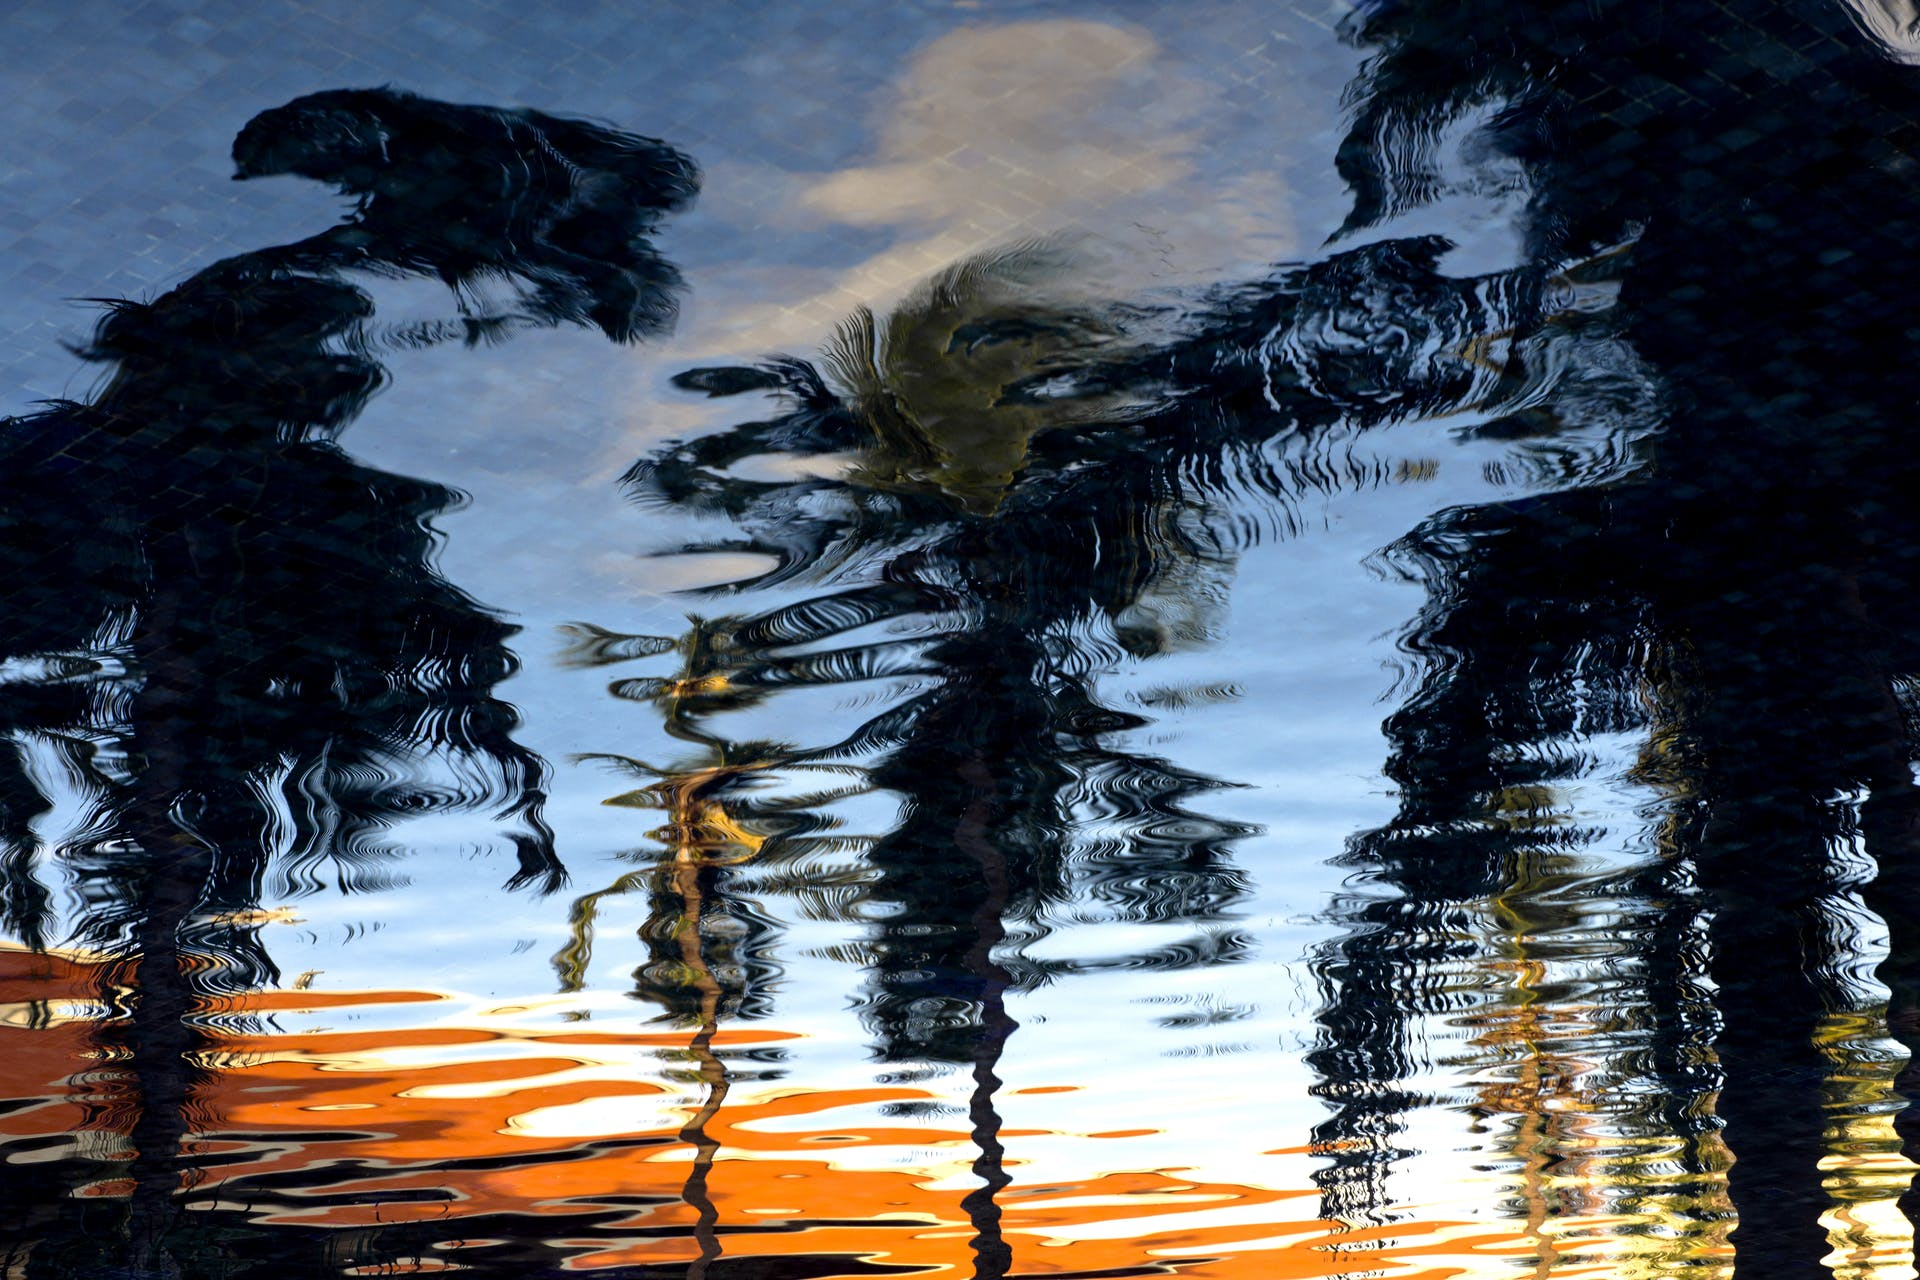 water ripple reflection palm trees trees